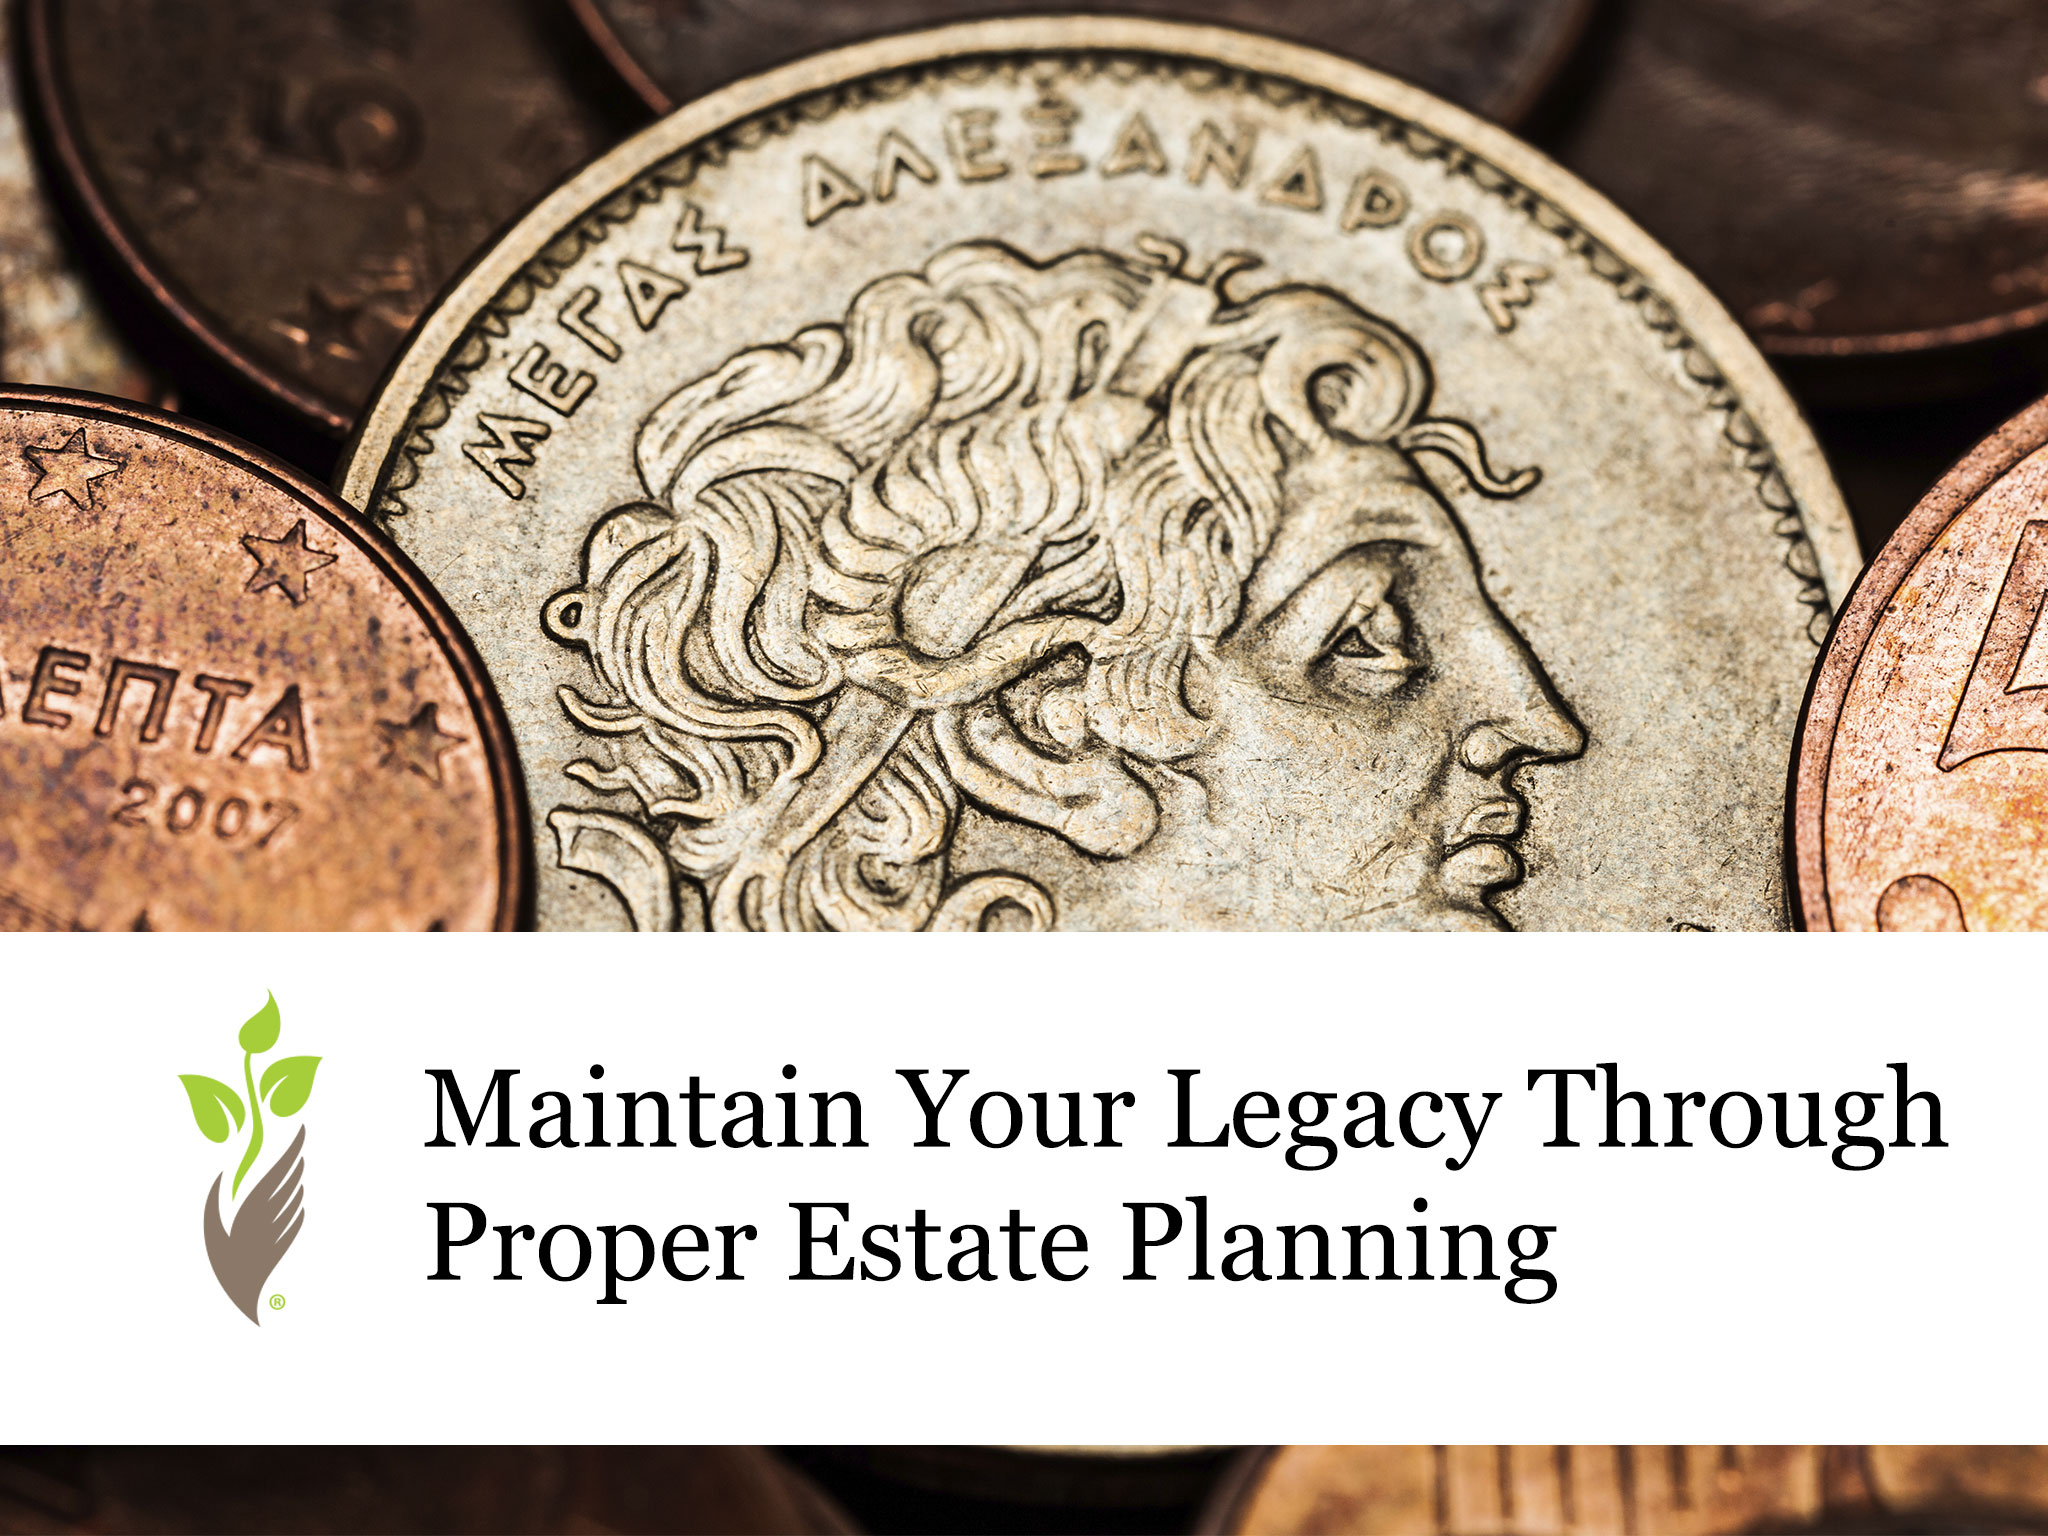 Maintain Your Legacy Through Proper Estate Planning